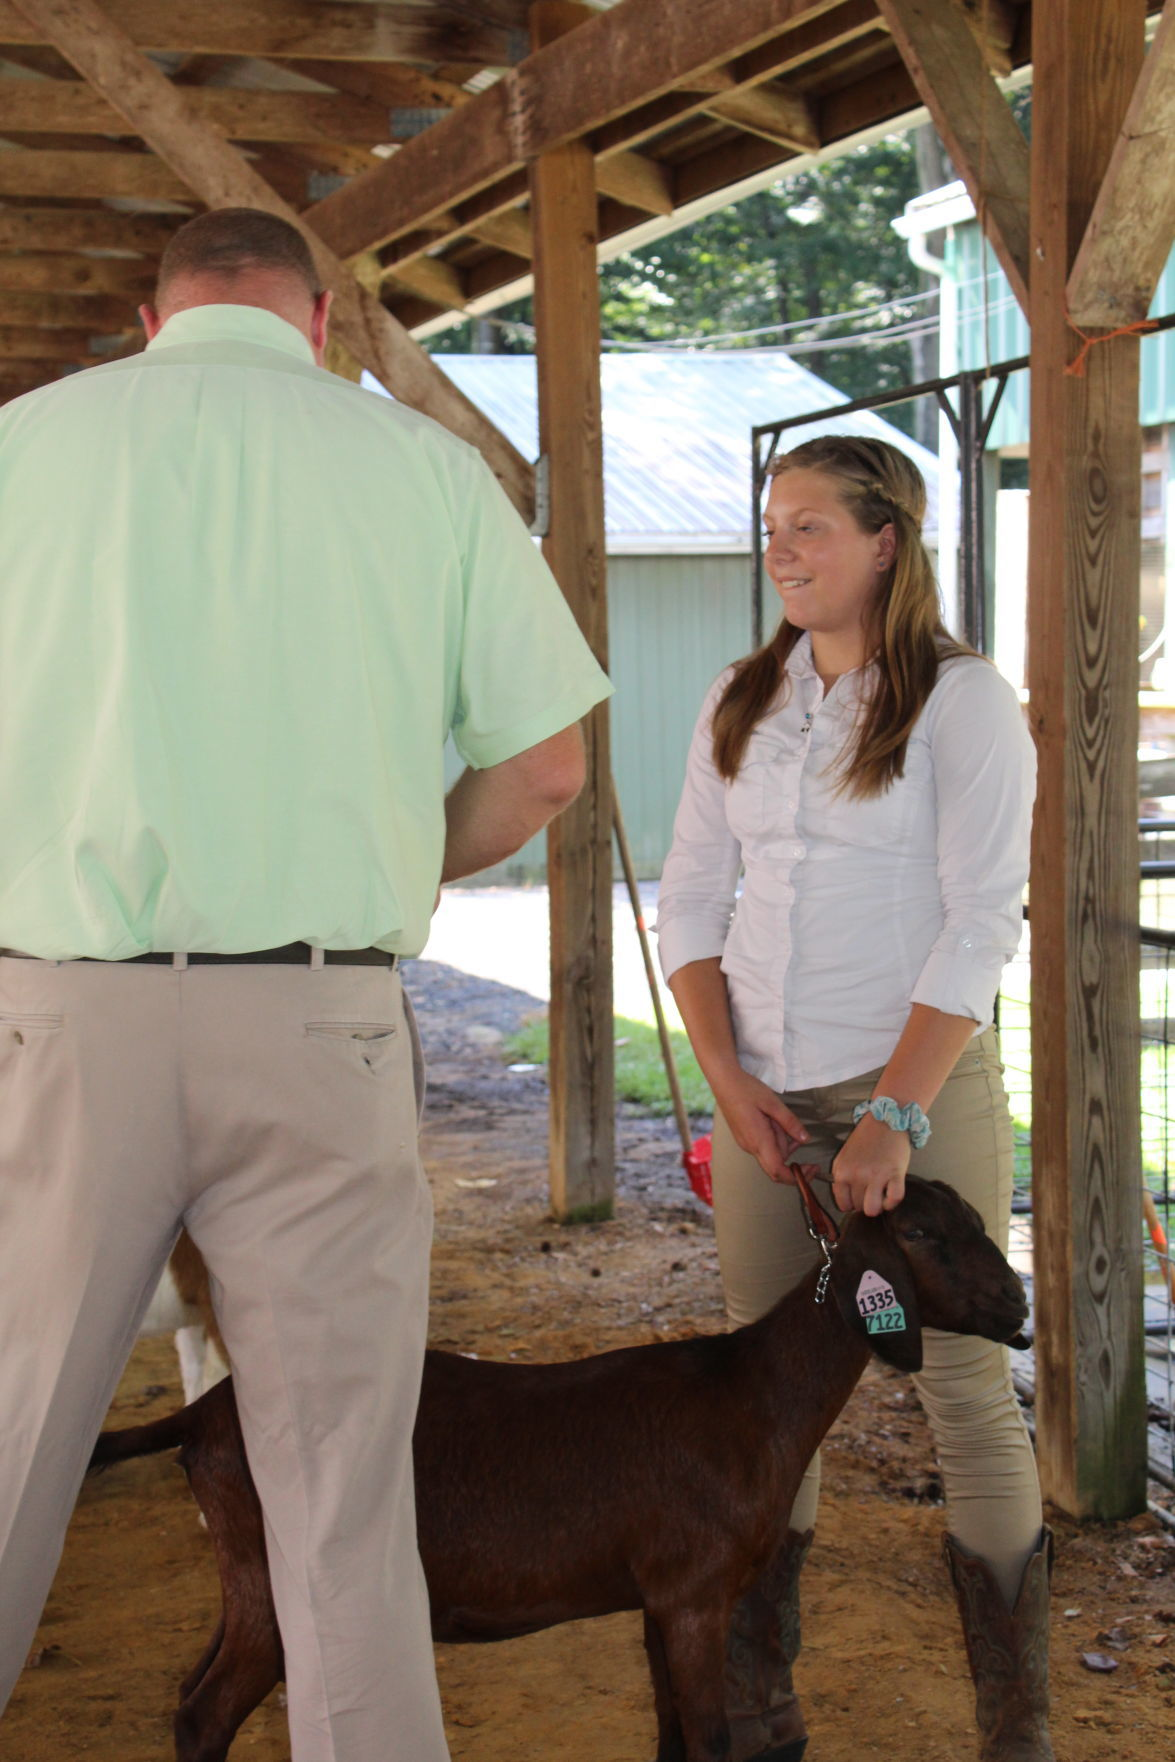 Caroline-Dorchester 4-Hers gush about their goats